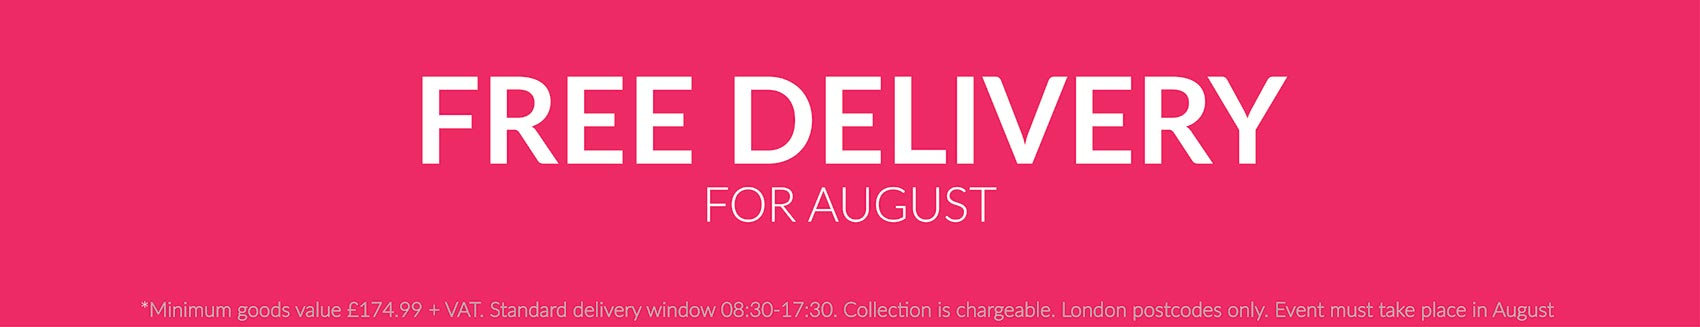 Free Delivery OFfer August